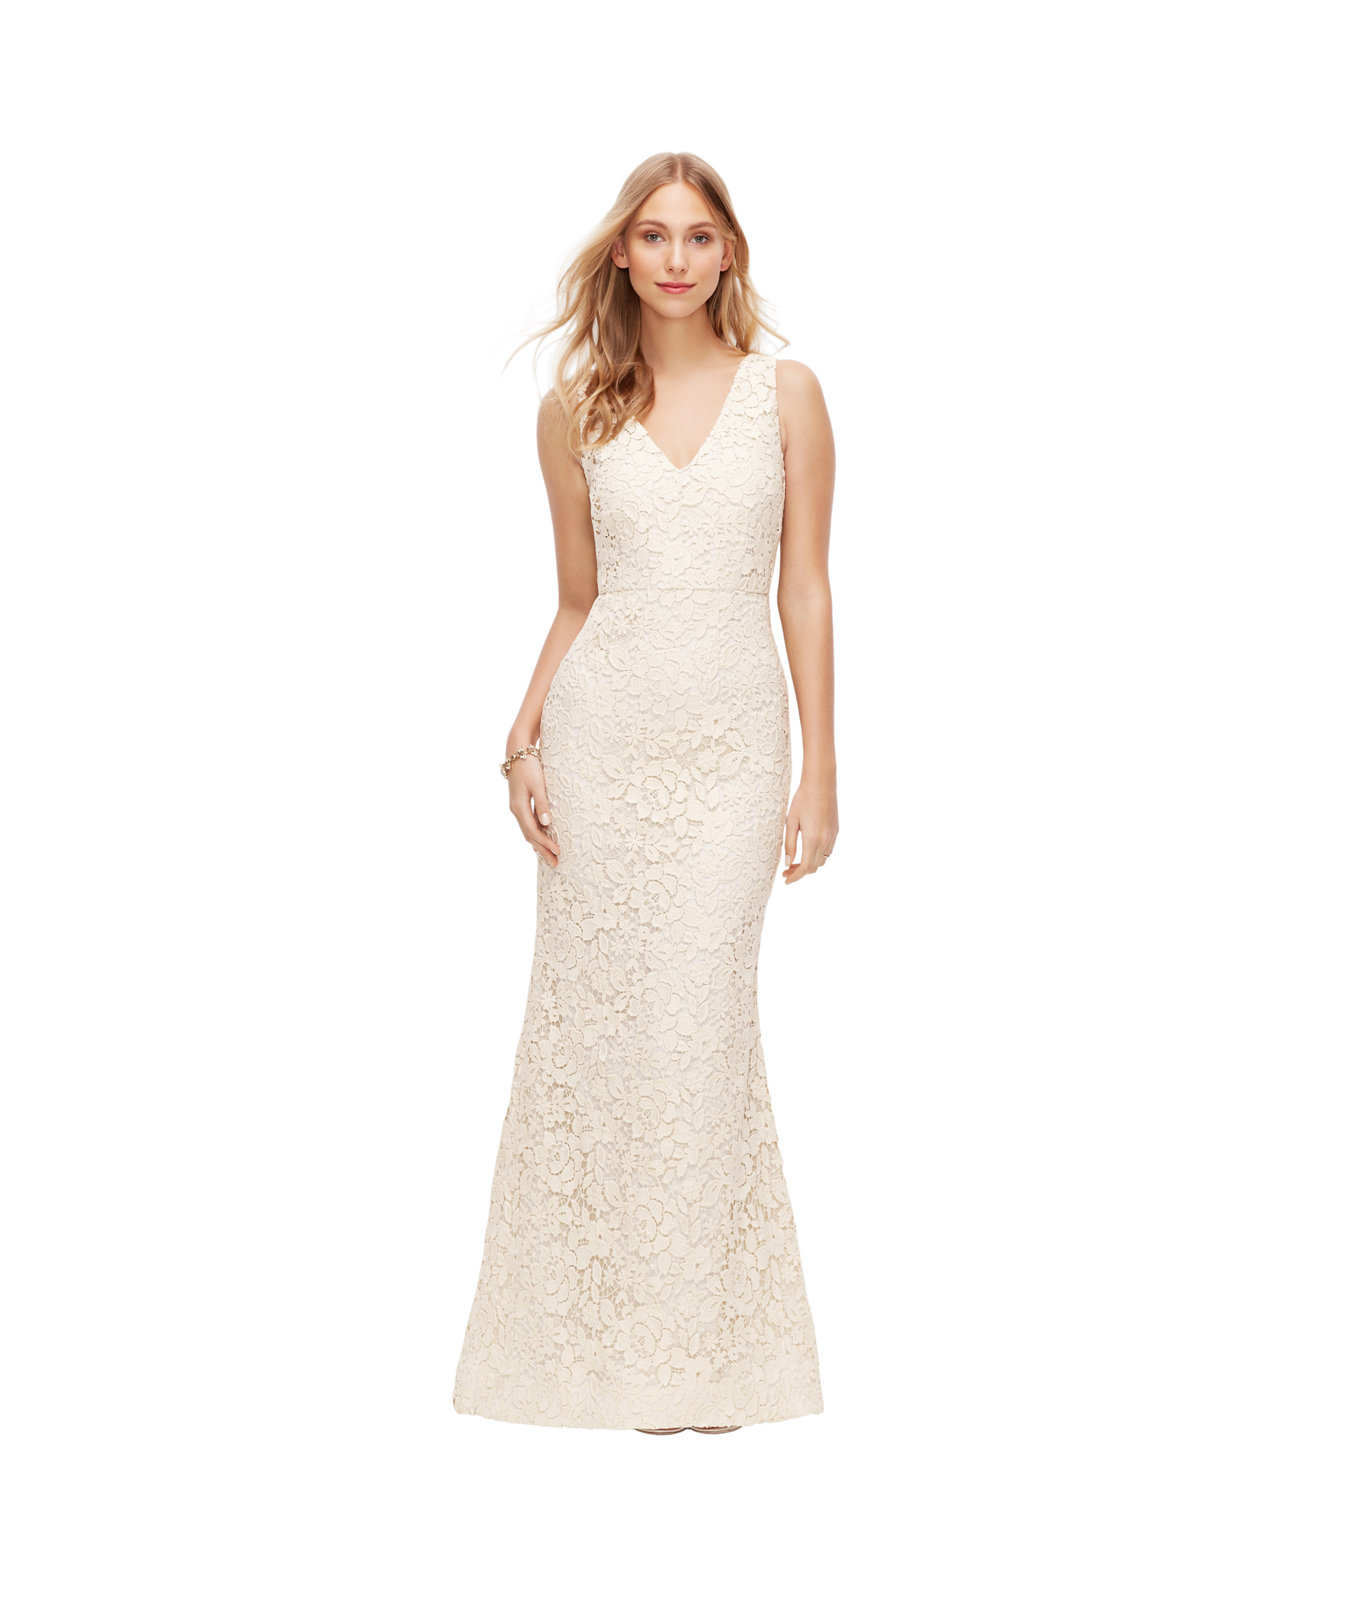 Simple Wedding Dresses Ann Taylor Wedding Dresses Asian